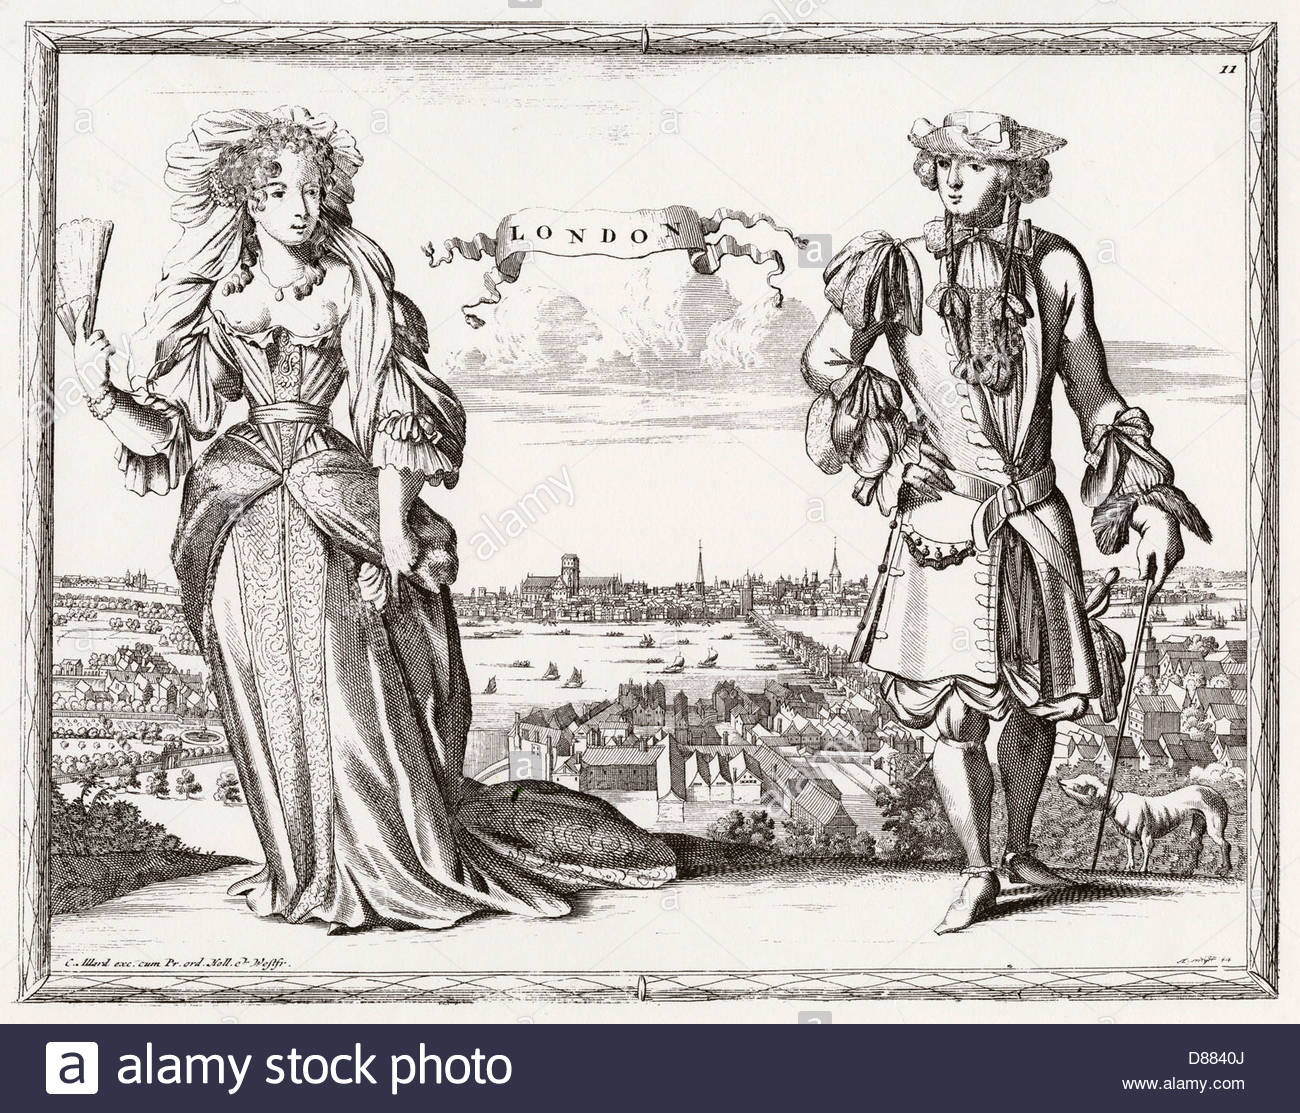 Londoners 1690s Stock Photo, Royalty Free Image: 56727122.